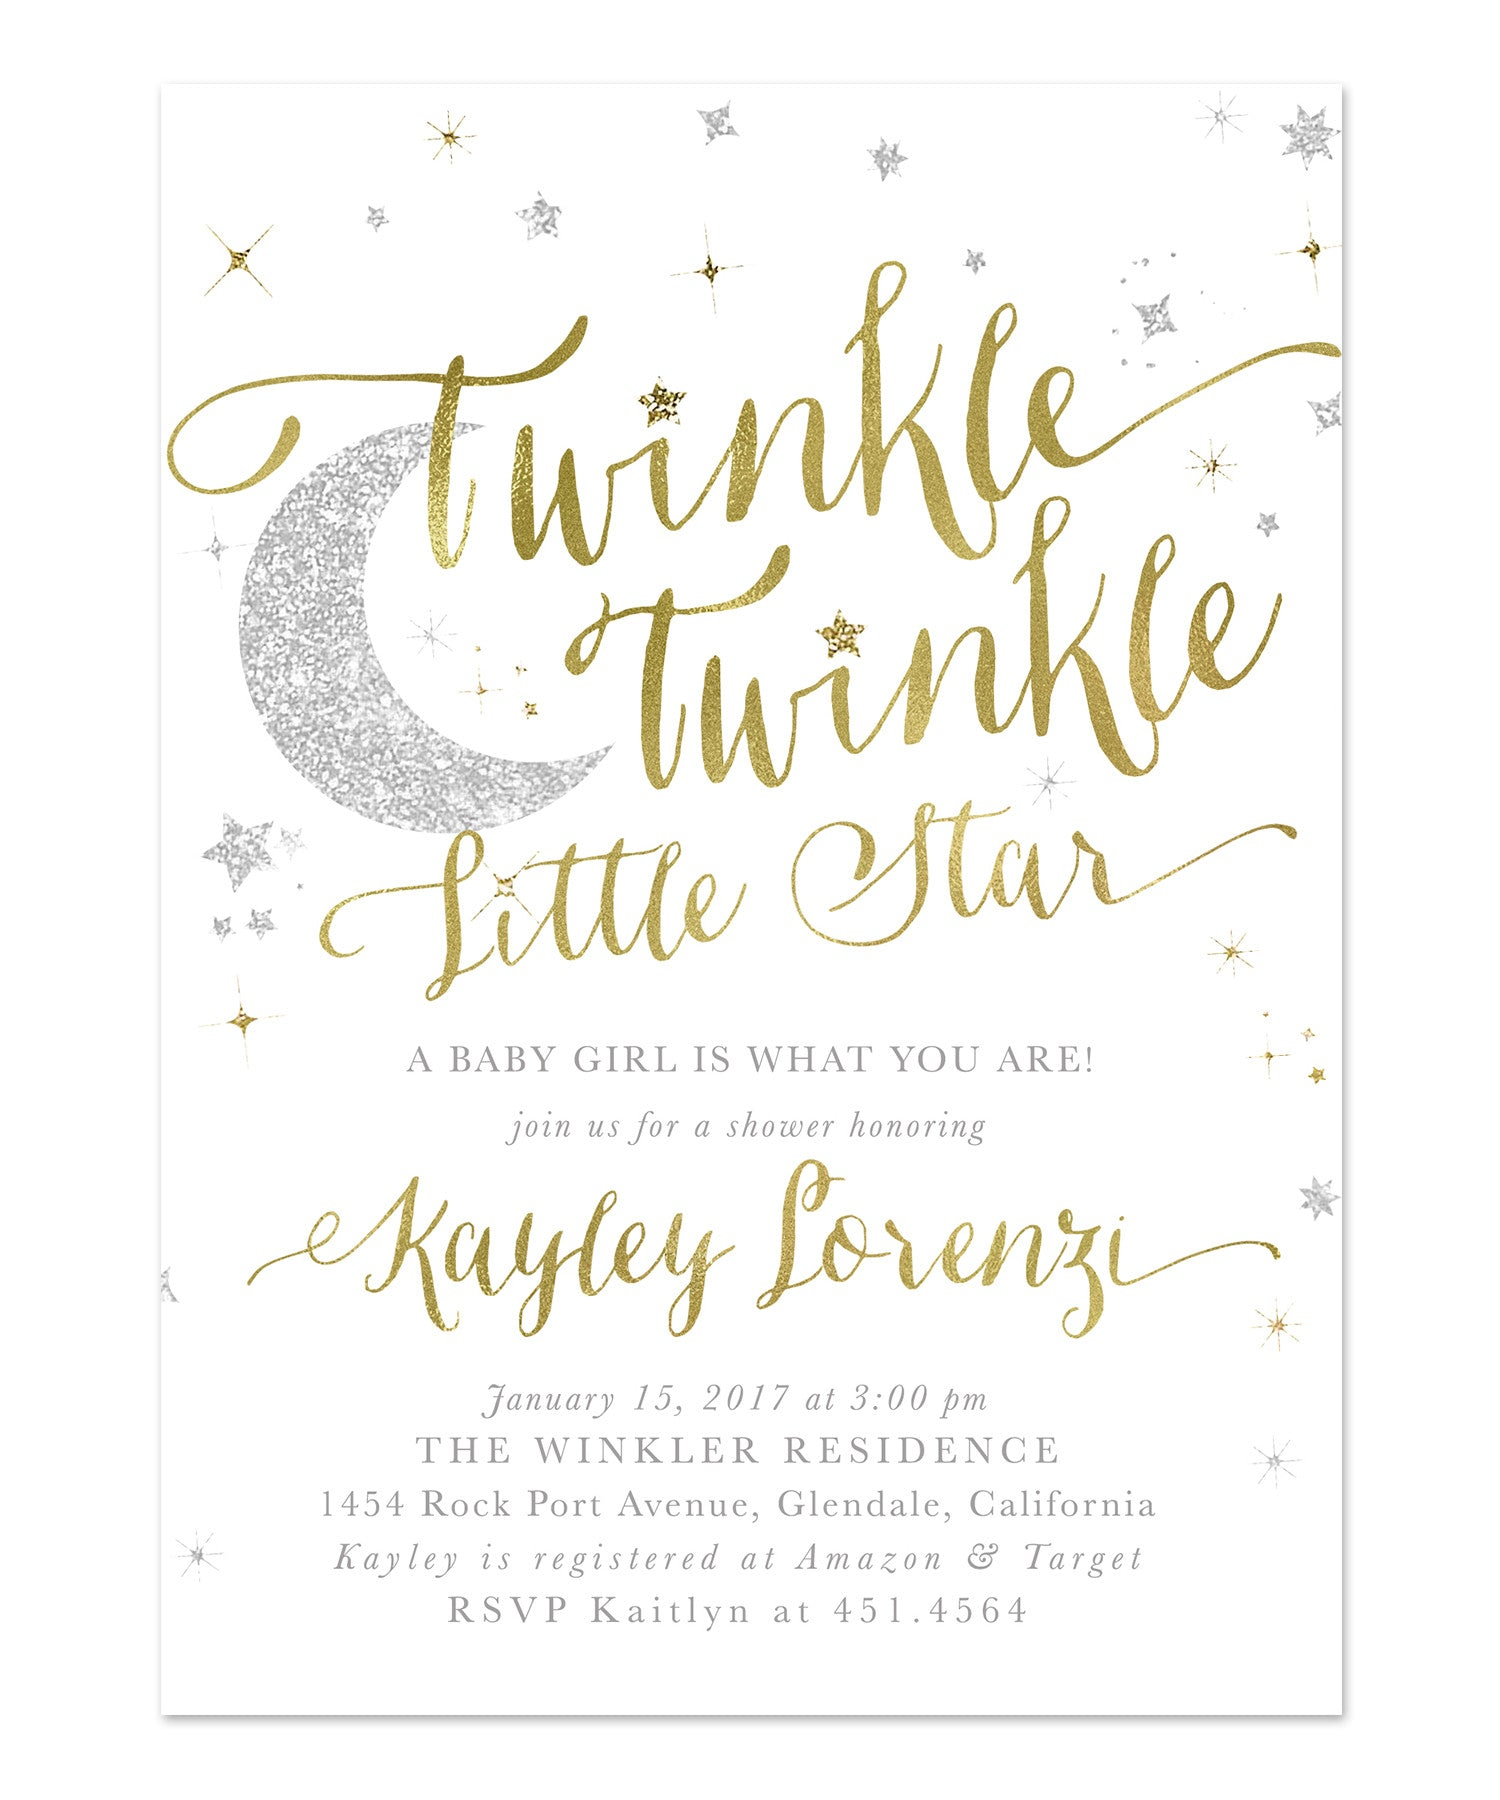 Twinkle Twinkle Little Star Boy or Girl Baby Shower Invitation {White} - Sea Paper Designs